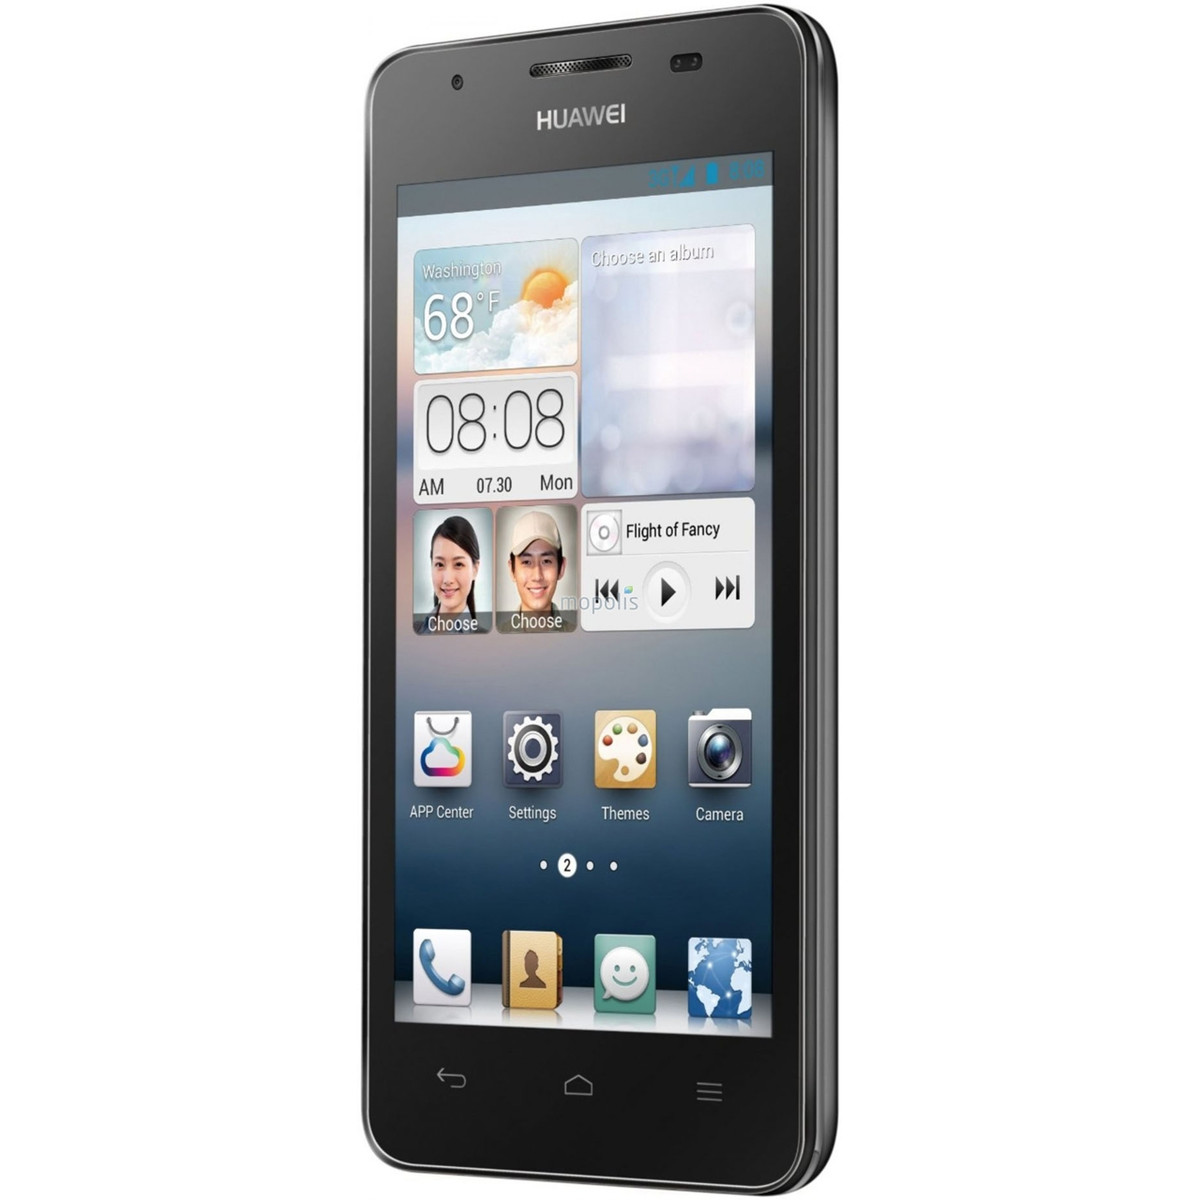 new huawei ascend g510 unlocked gsm android cell phone black ebay. Black Bedroom Furniture Sets. Home Design Ideas